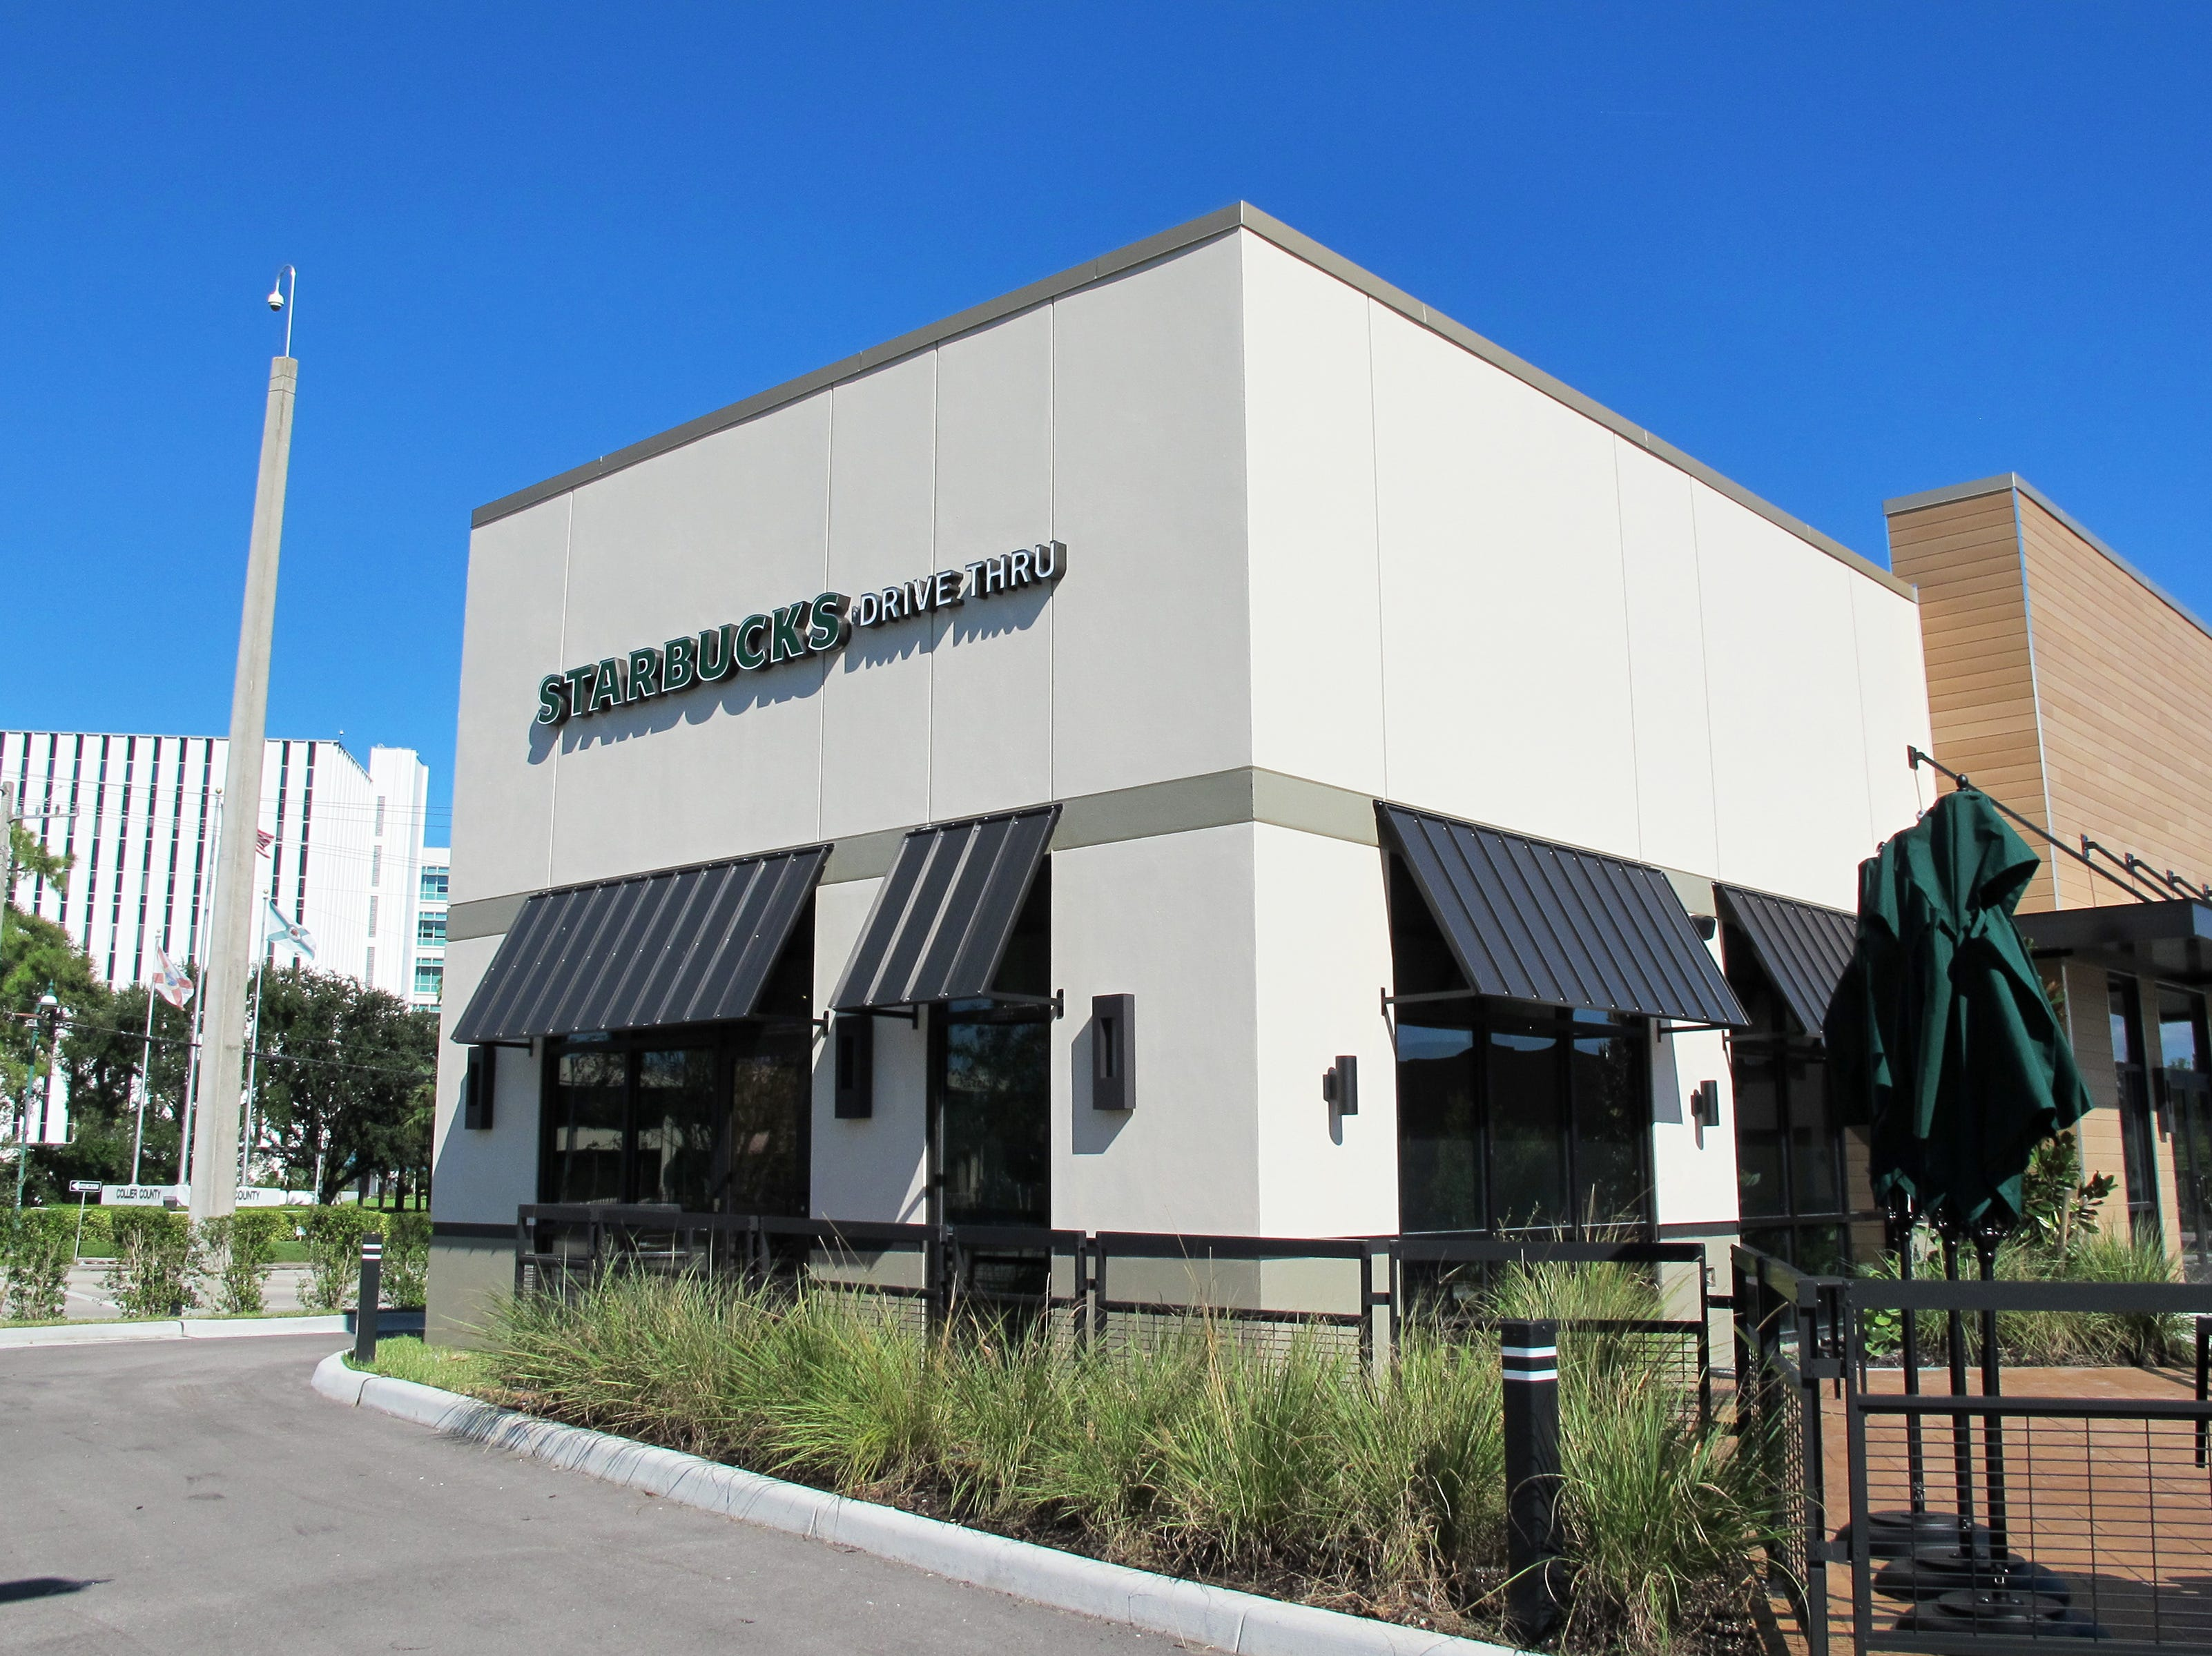 Starbucks opened new freestanding drive-thru locations in October 2018, above, across from the Collier County Government Center at Airport-Pulling Road and U.S. 41 in East Naples as well as in April near Park Shore Plaza in Naples. The coffeeshop chain also opened a store in July inside Publix supermarket at Naples Plaza.